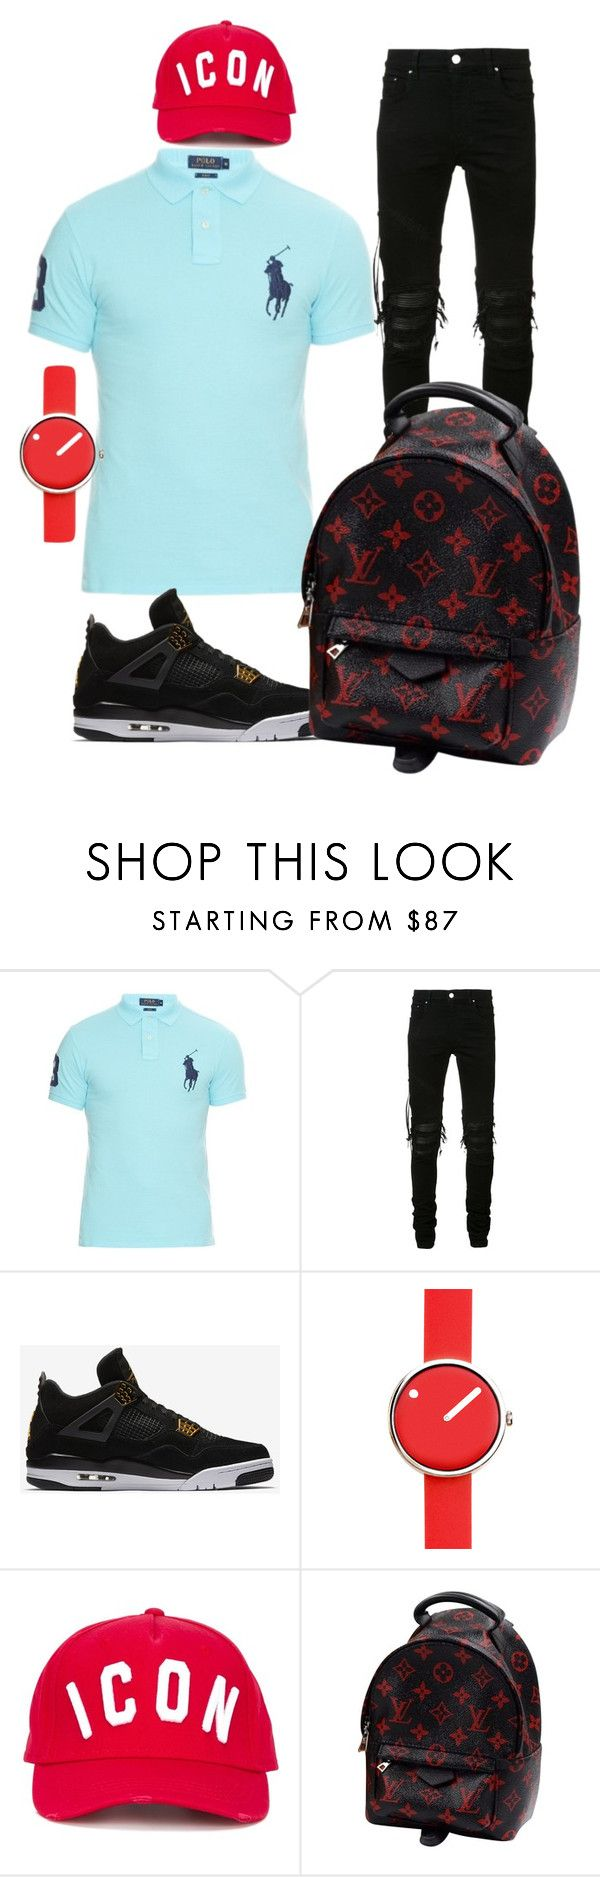 """beach day outfit"" by tommy-el-yhan-pelle on Polyvore featuring Polo Ralph Lauren, AMIRI, NIKE, Rosendahl, Dsquared2, Louis Vuitton, men's fashion and menswear"